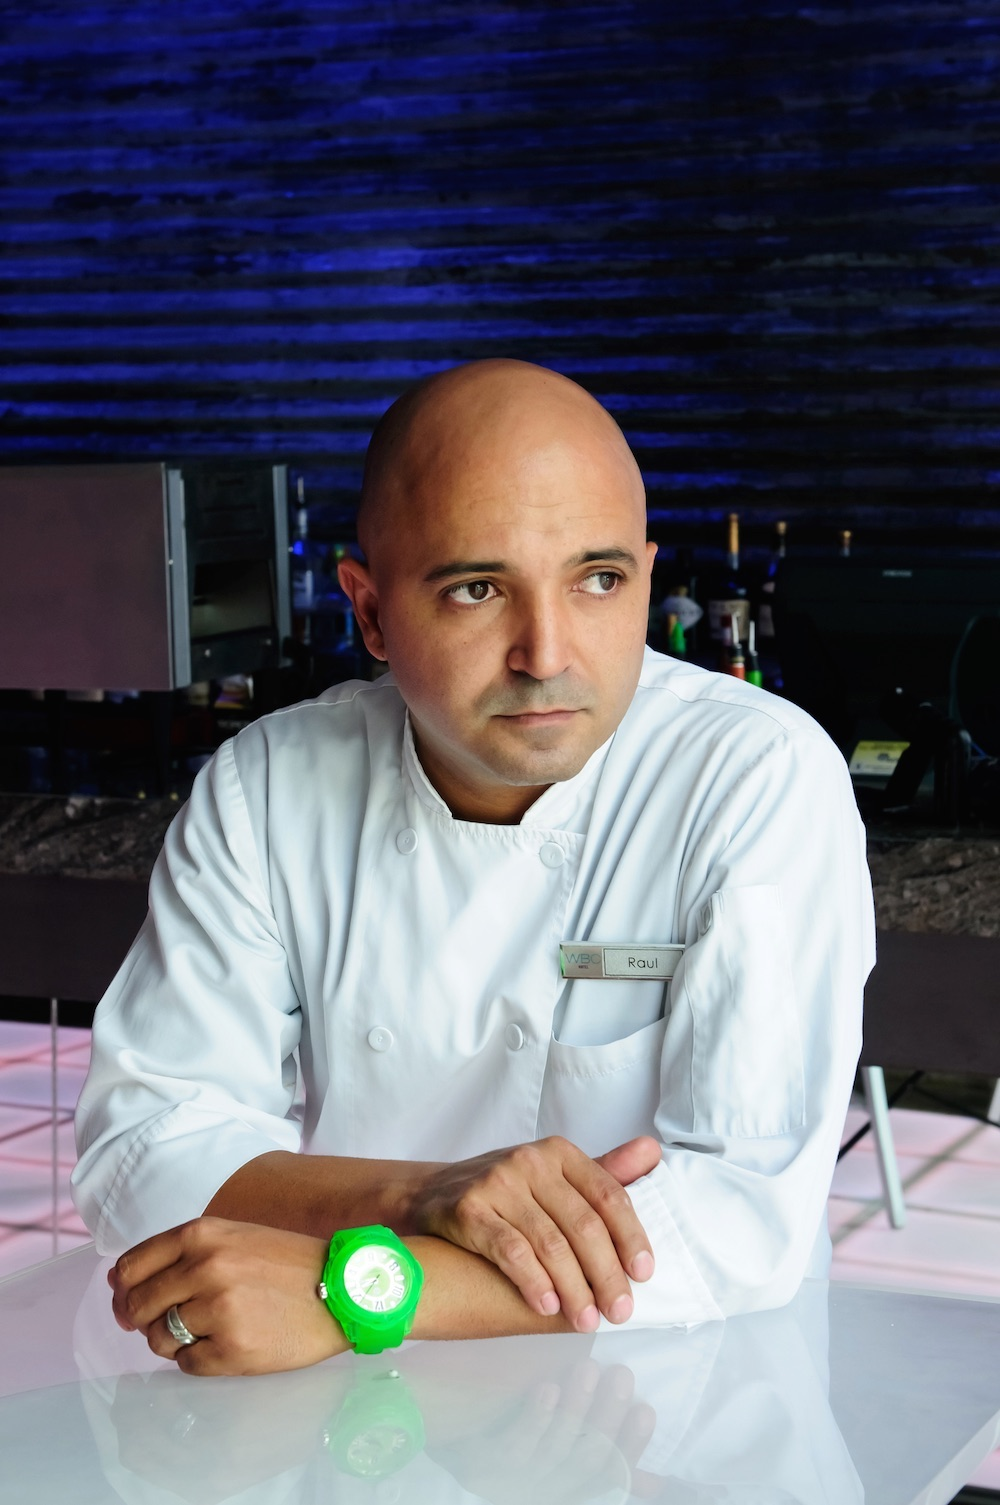 Chef Raul Correa is the creative talent behind Zest restaurant at the San Juan Water and Beach Club in Isla Verde.